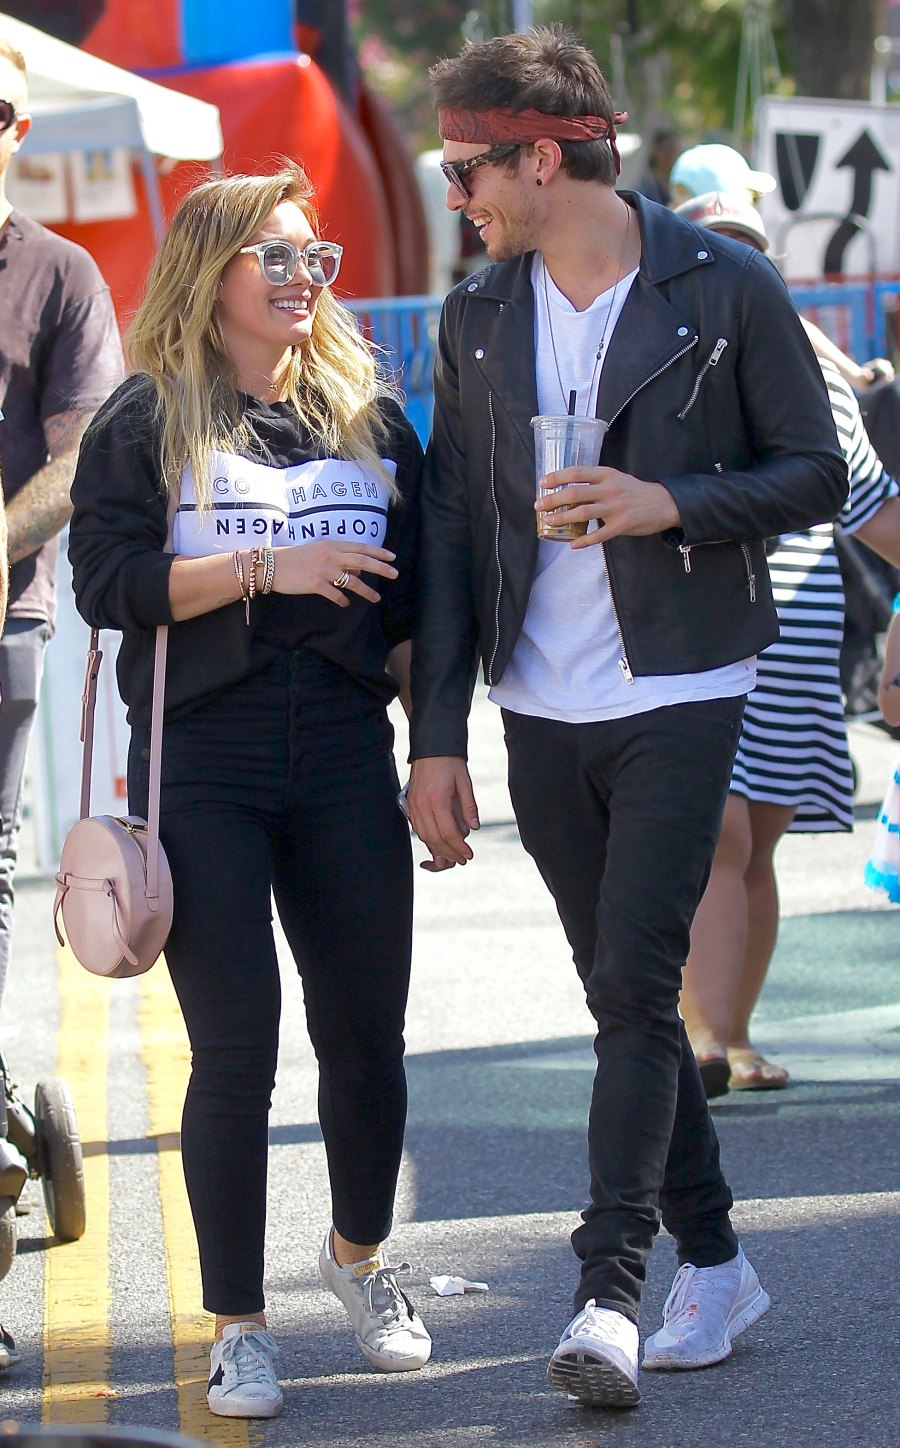 Hilary Duff and Matthew Koma: A Timeline of Their Relationship